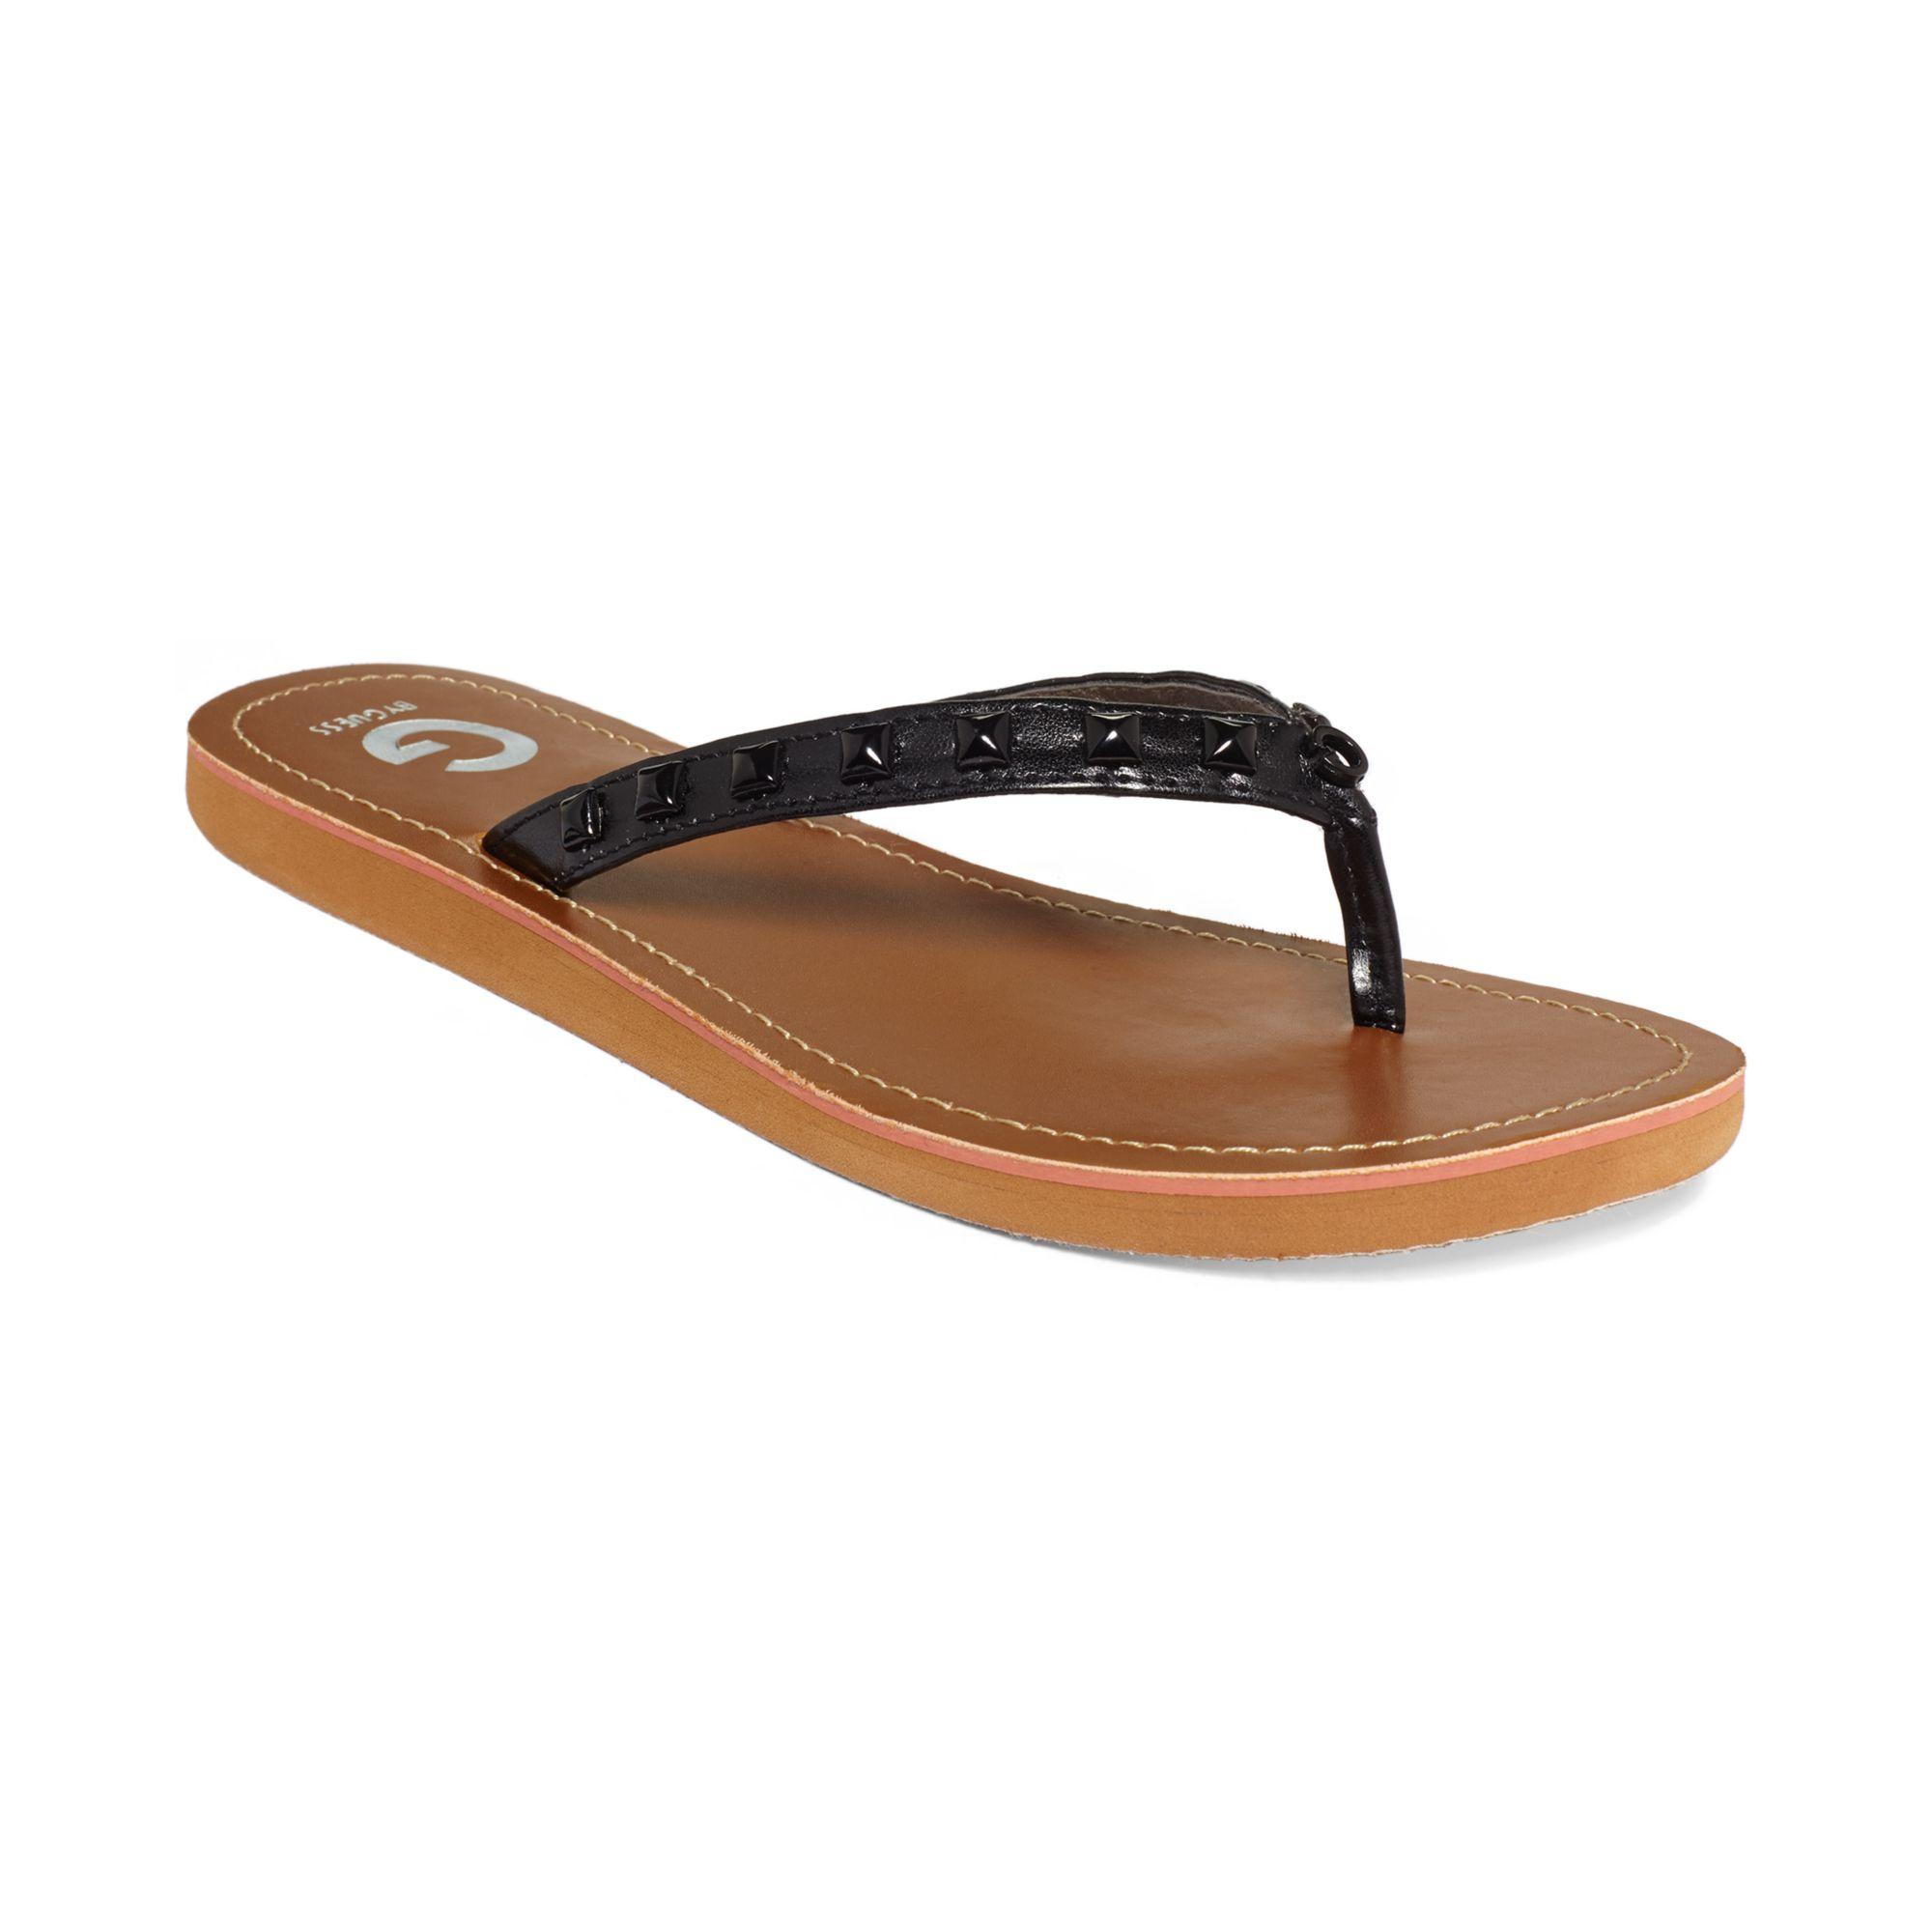 38e769356a619 Lyst - G by Guess Womens Kendrah Studded Flip Flops in Black